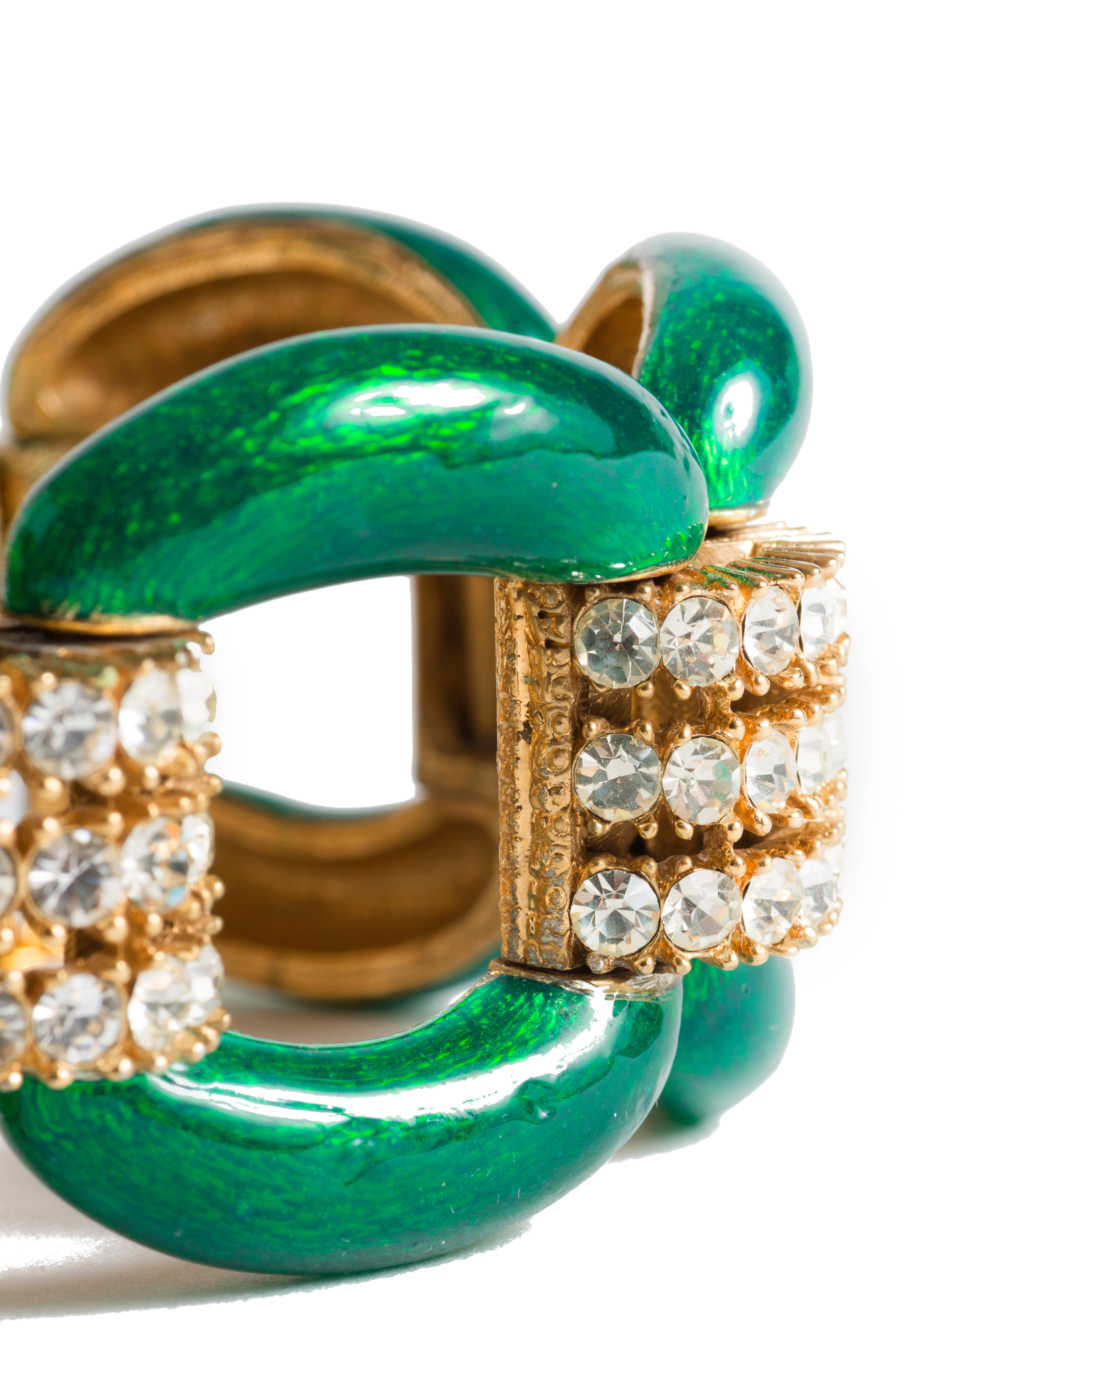 Regal Emerald Green Enameled Bracelet,by Ciner, circa 1960's